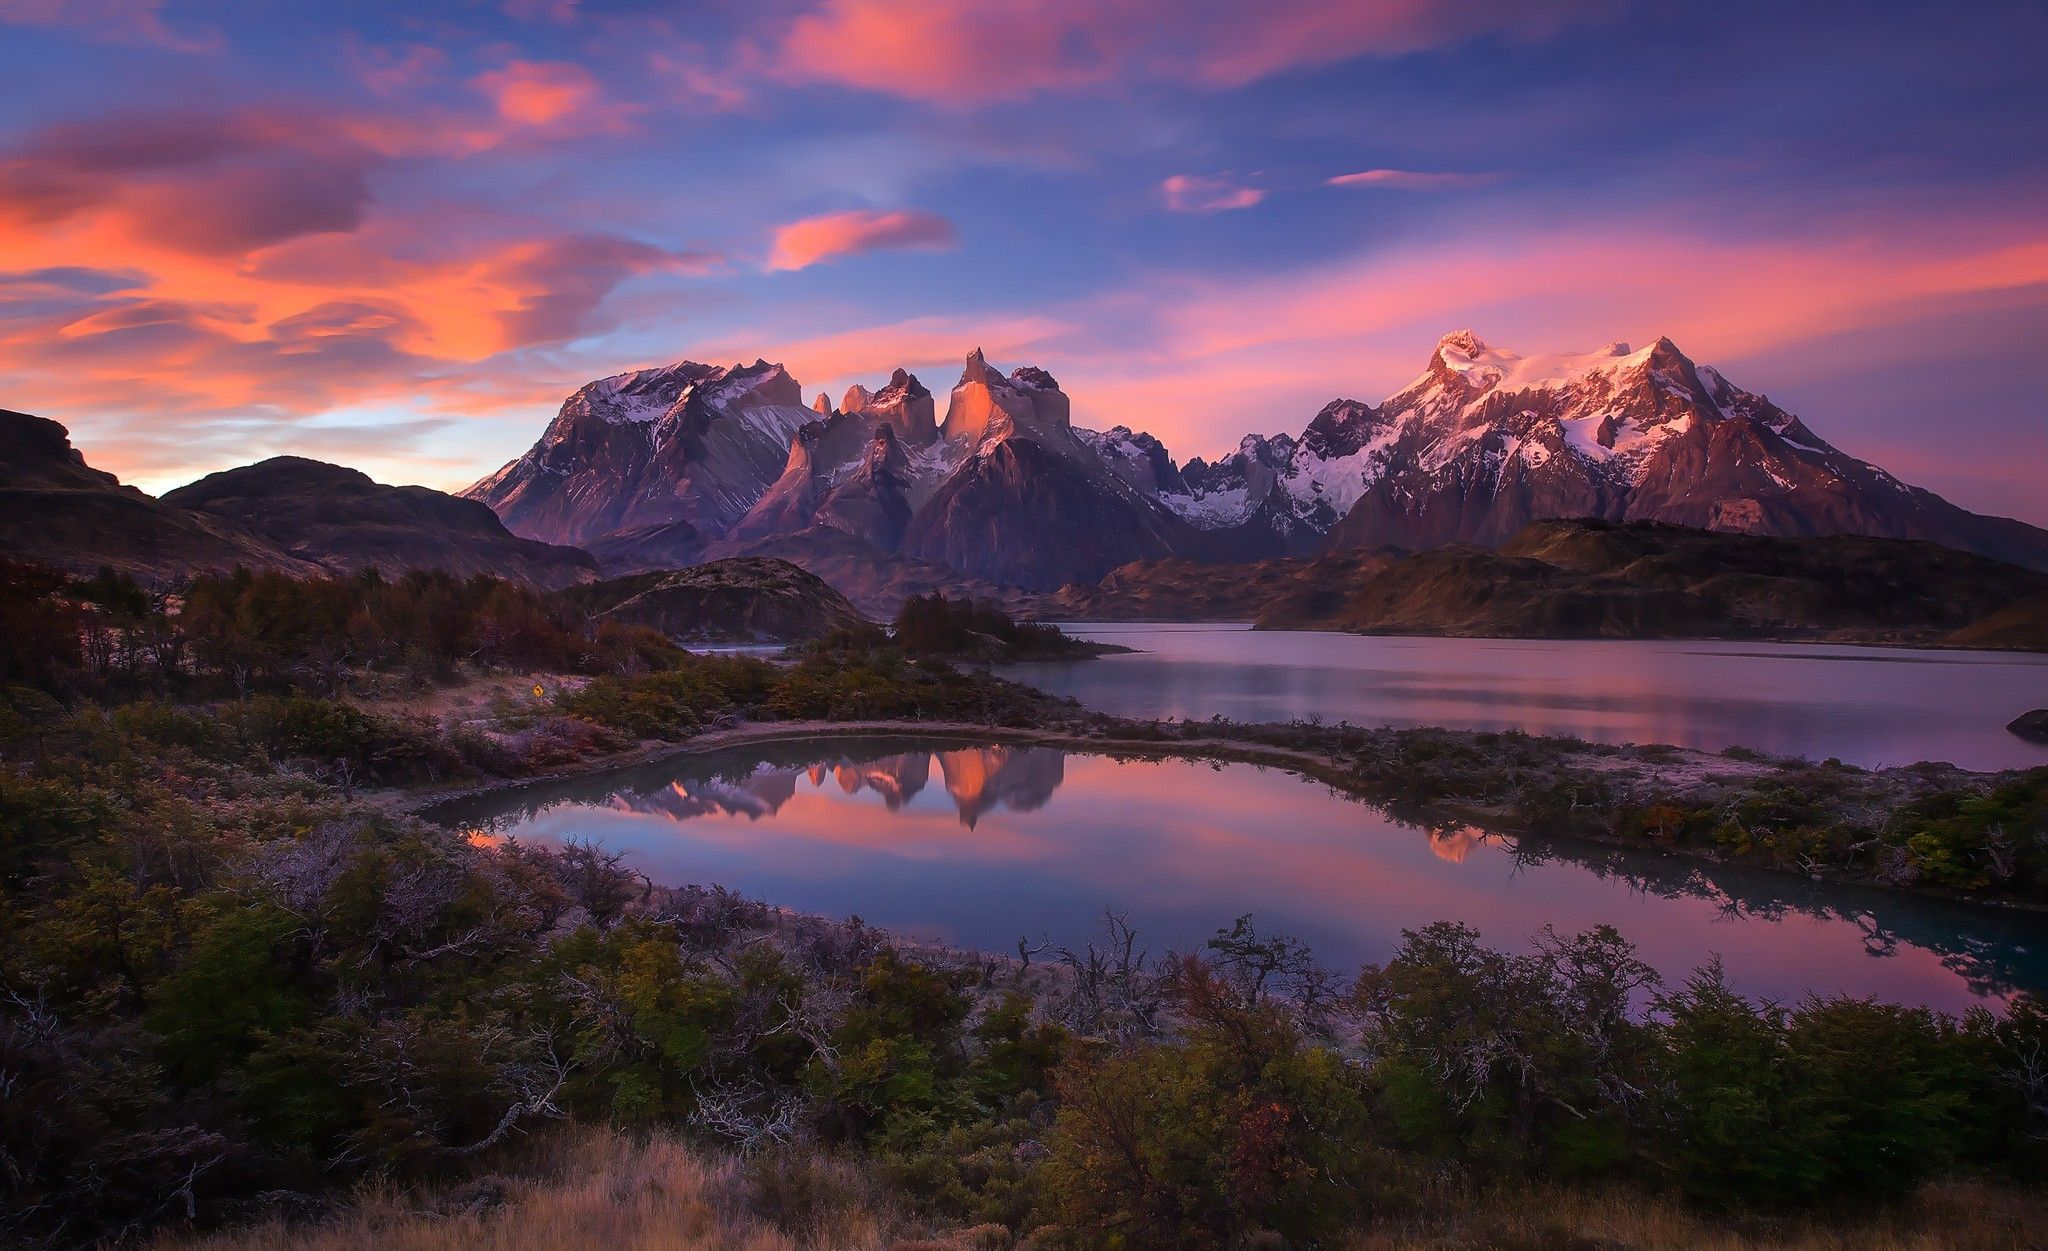 Nature Landscape Mountain Lake Sunrise Shrubs Snowy Peak Clouds Torres Del Paine Chile Patagonia Wallpapers Hd Desktop And Mobile Backgrounds Landscape Photography Nature Sunset Landscape Beautiful Nature Pictures